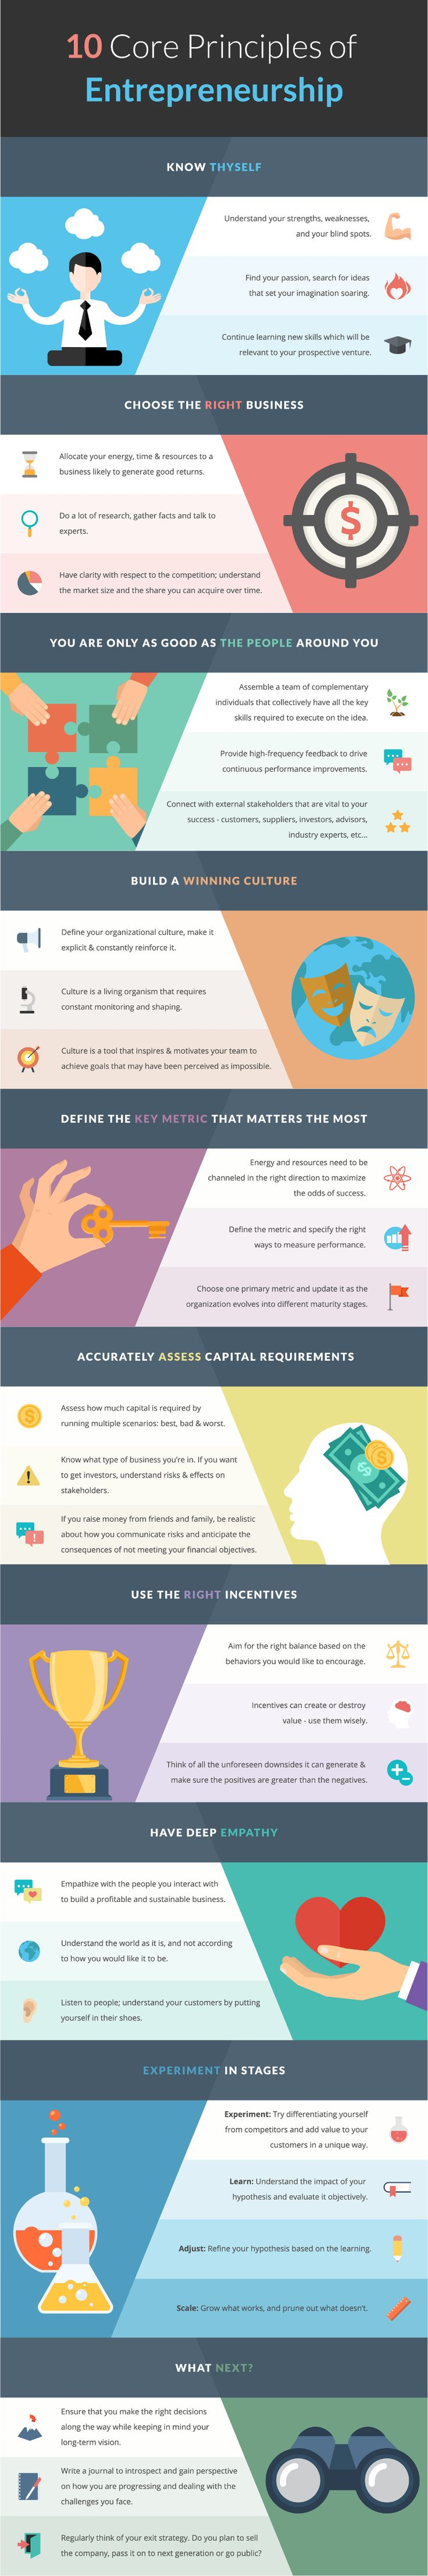 10 Core Principles of Entrepreneurship #entrepreneur #Infographic